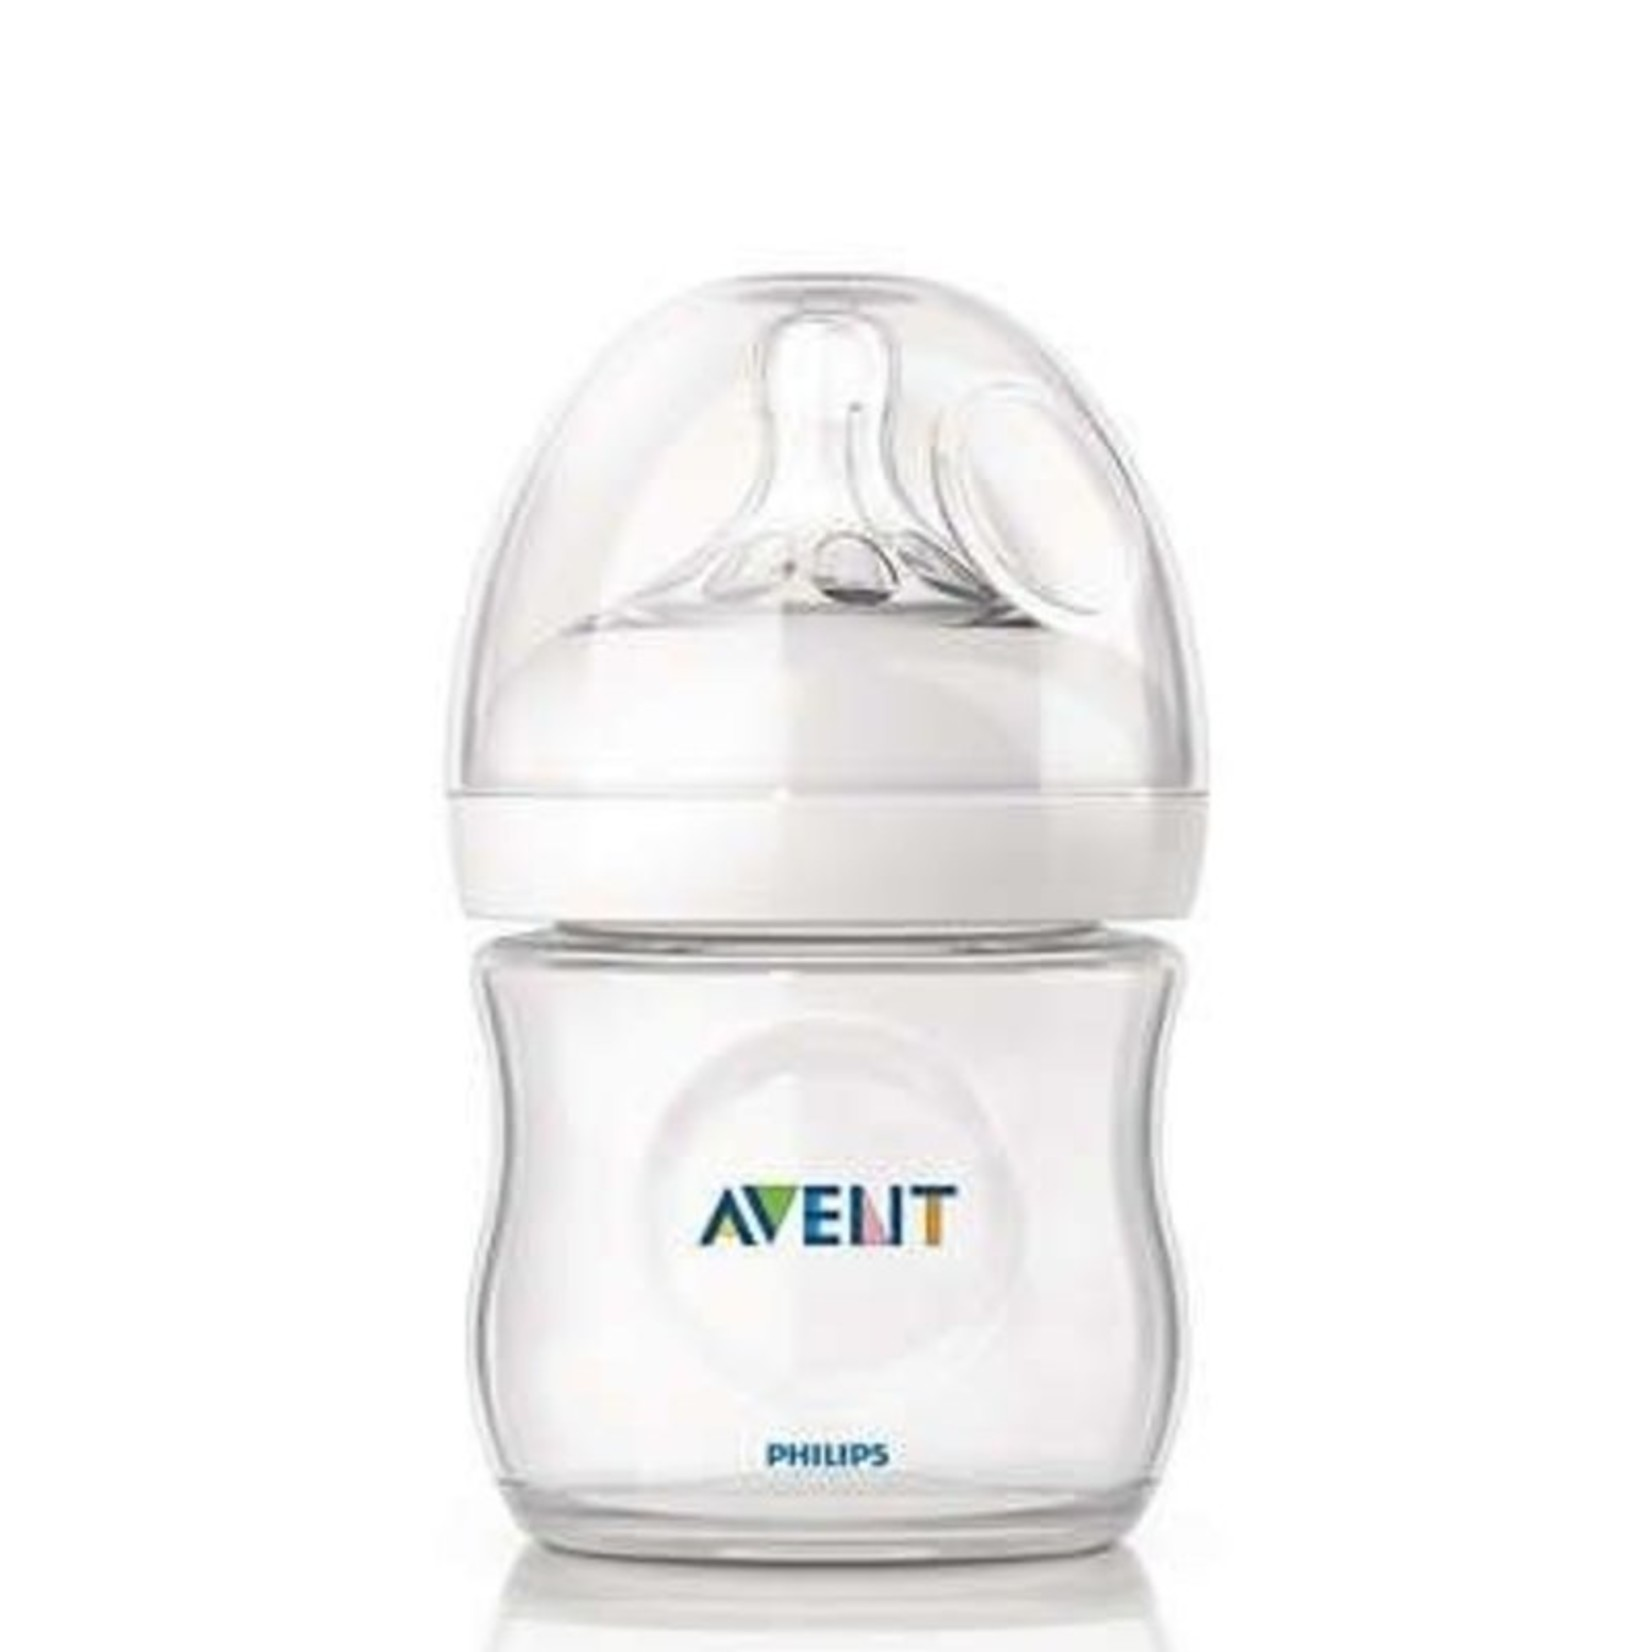 Avent Avent Zuigfles Natural Glas 120ml